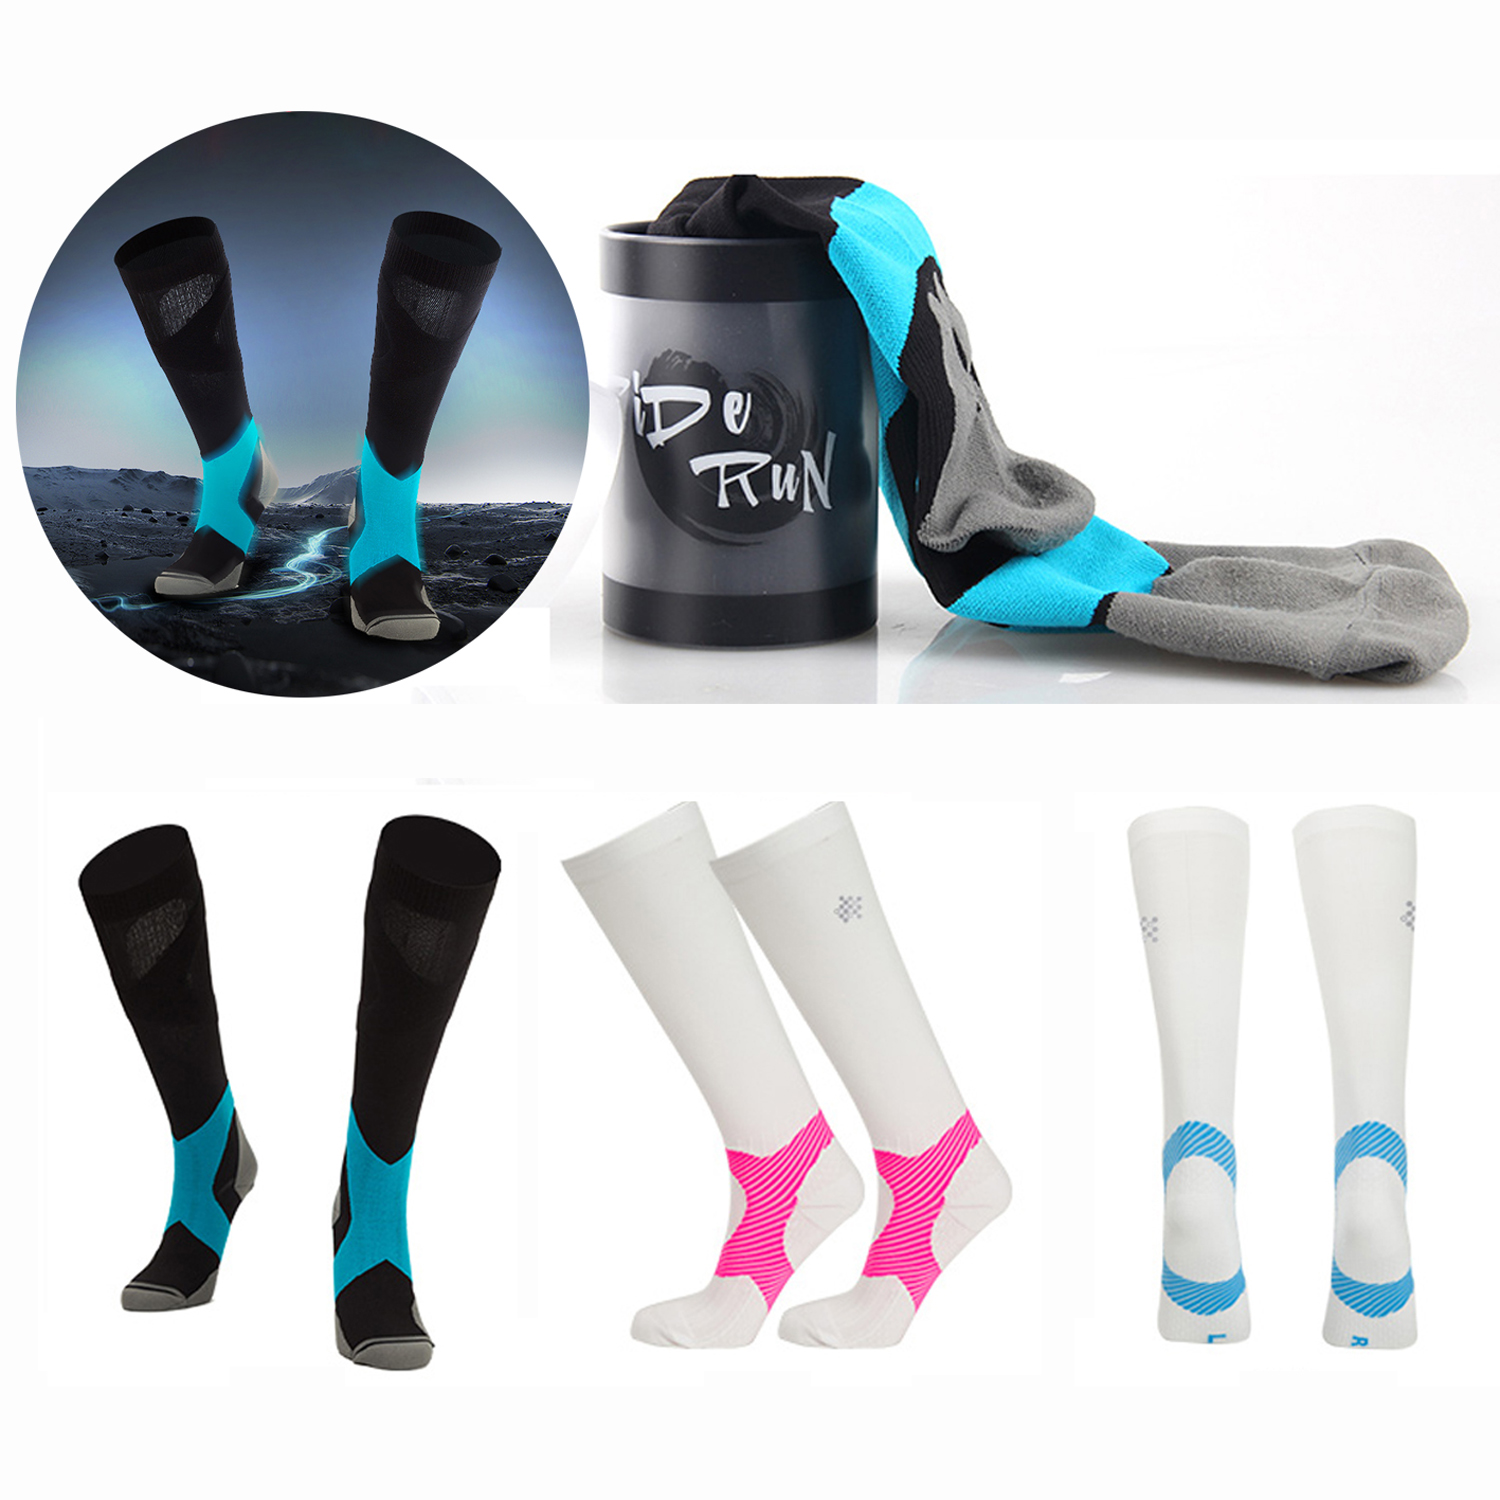 1 Pair Compression Socks Cycling Sports Stockings for Hiking Running Marathon Football Men Women Athletic Riding Bike Long Socks